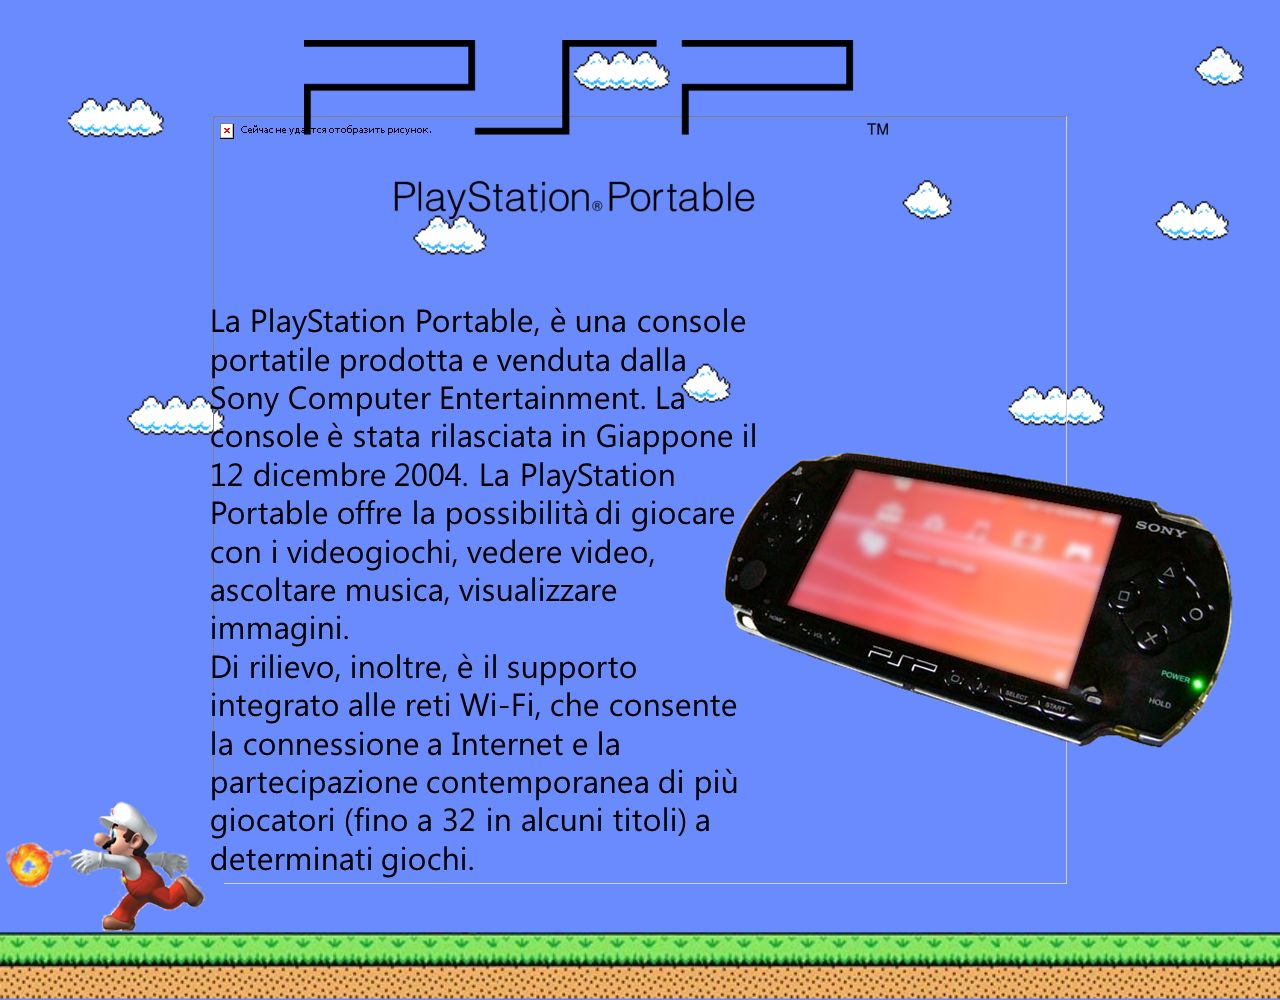 La PlayStation Portable, è una console portatile prodotta e venduta dalla Sony Computer Entertainment.